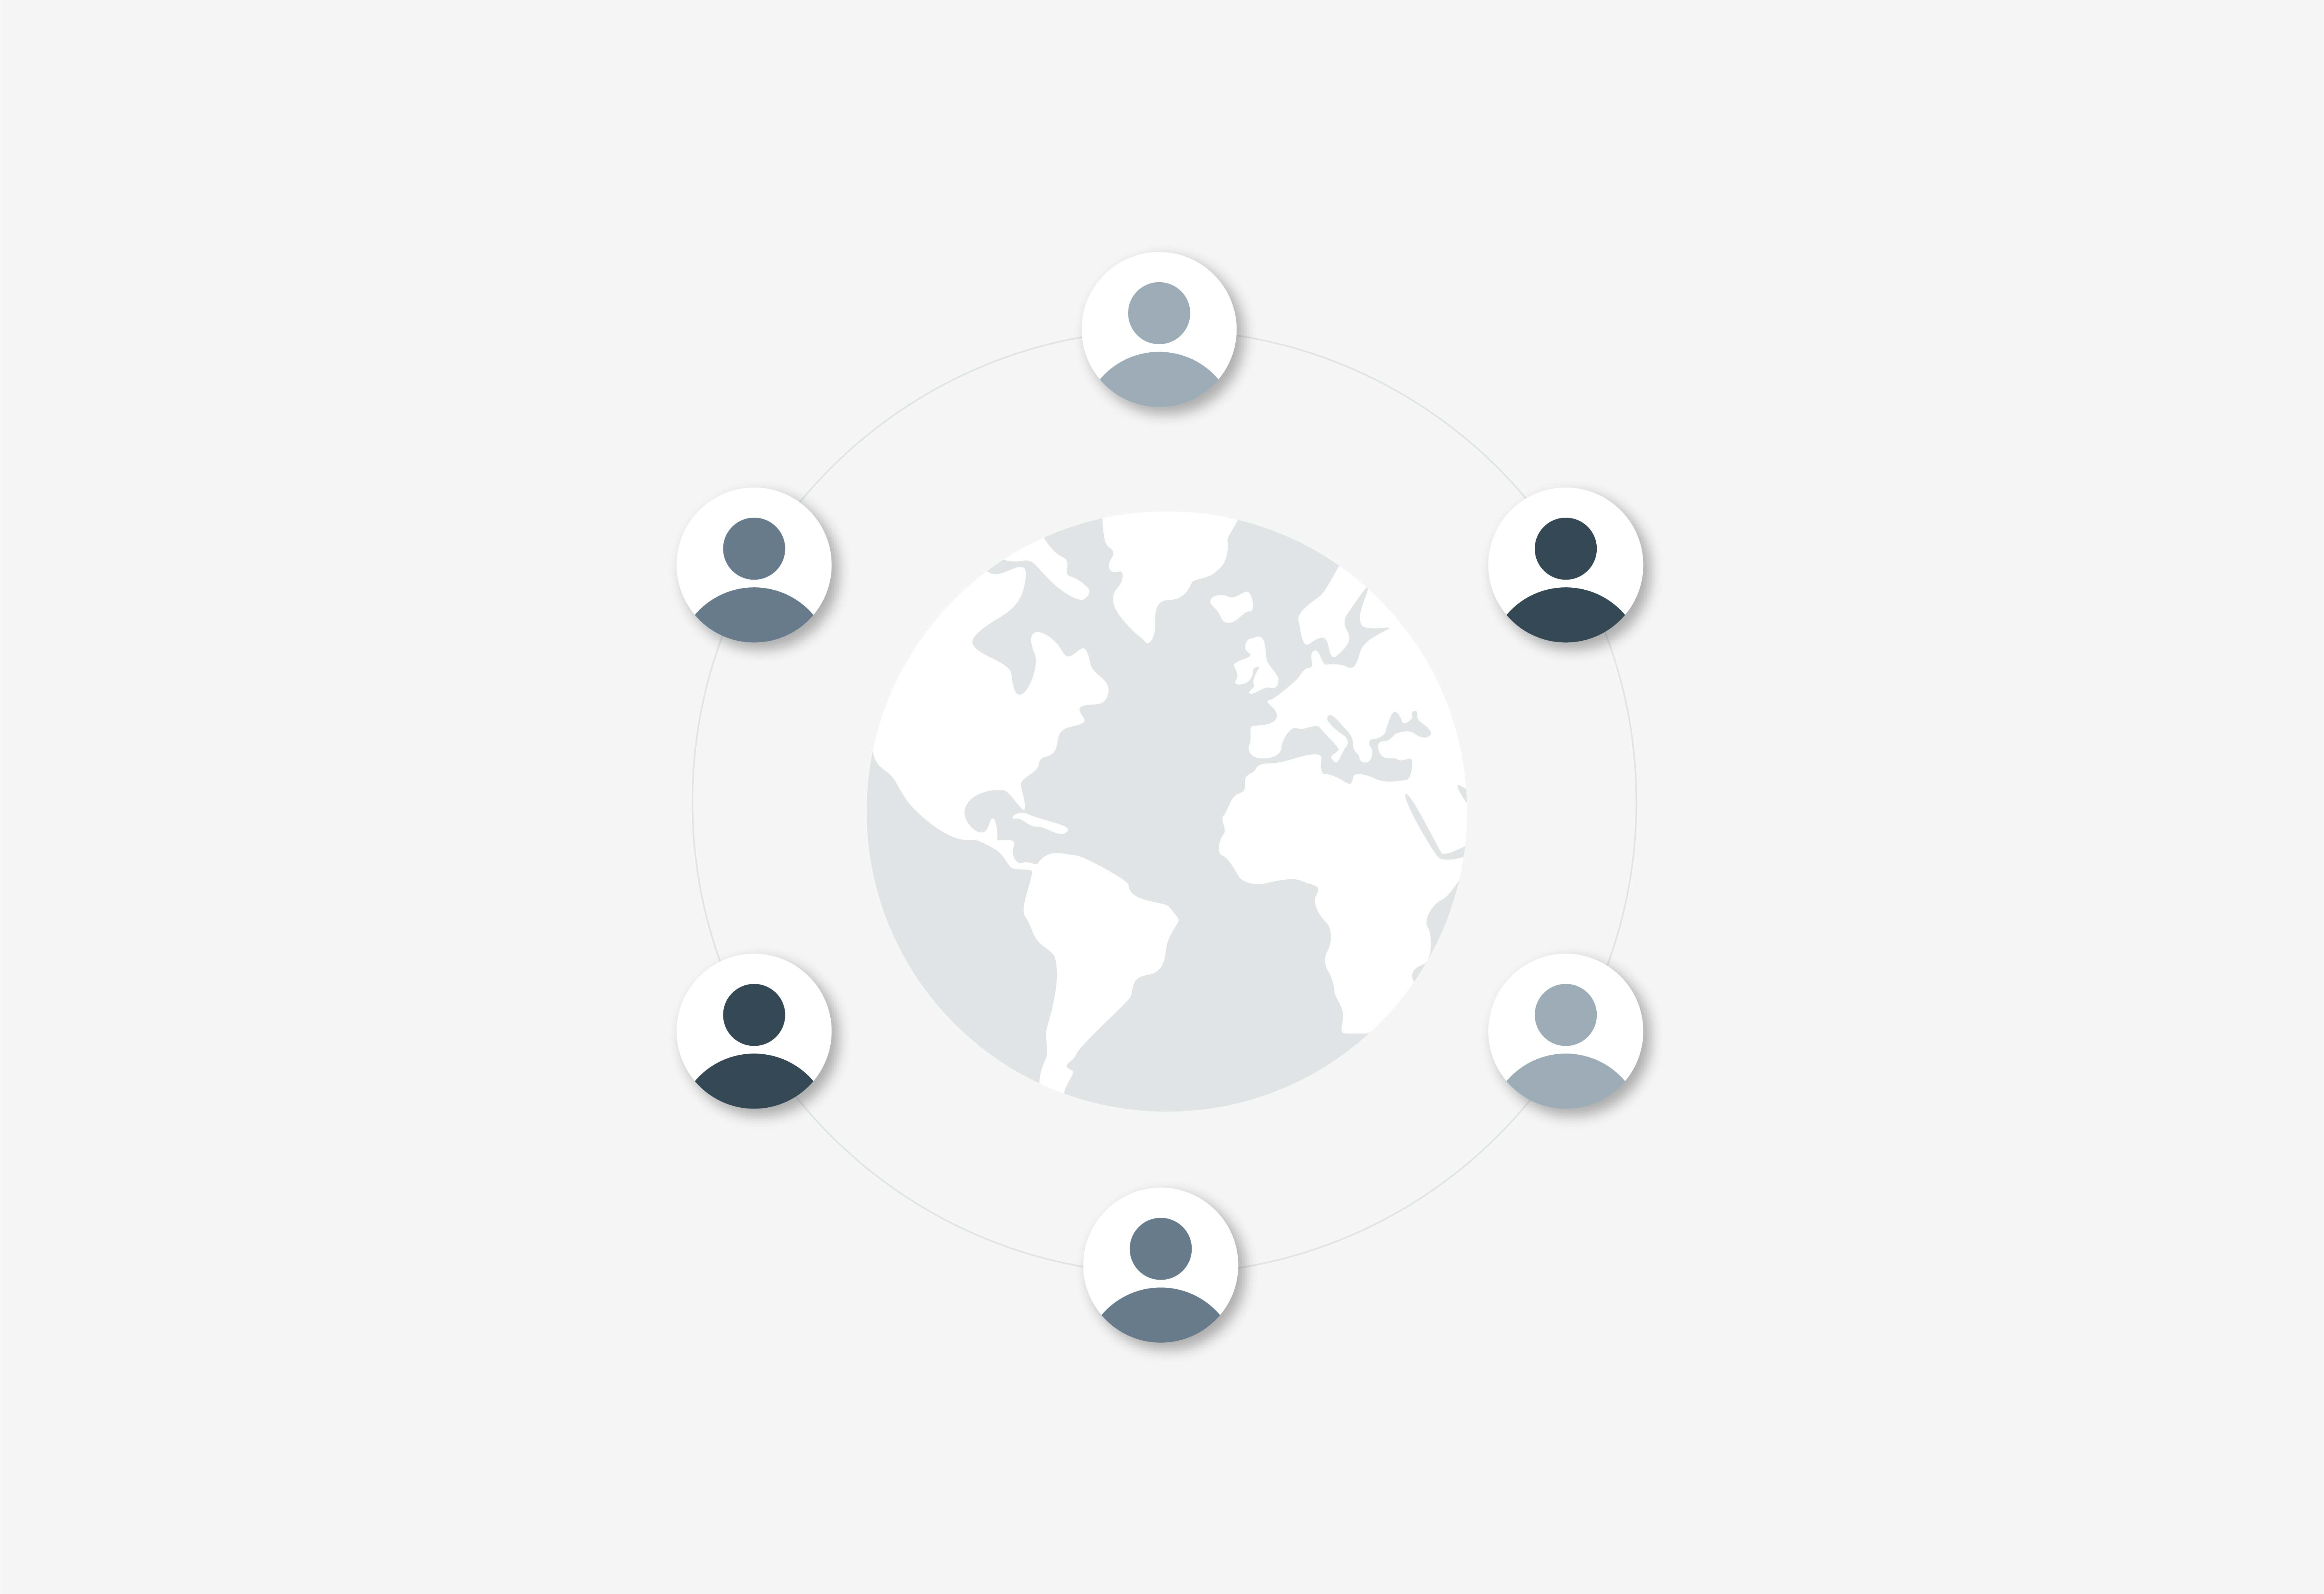 Graphic of people around a globe representing the Oversight Board.